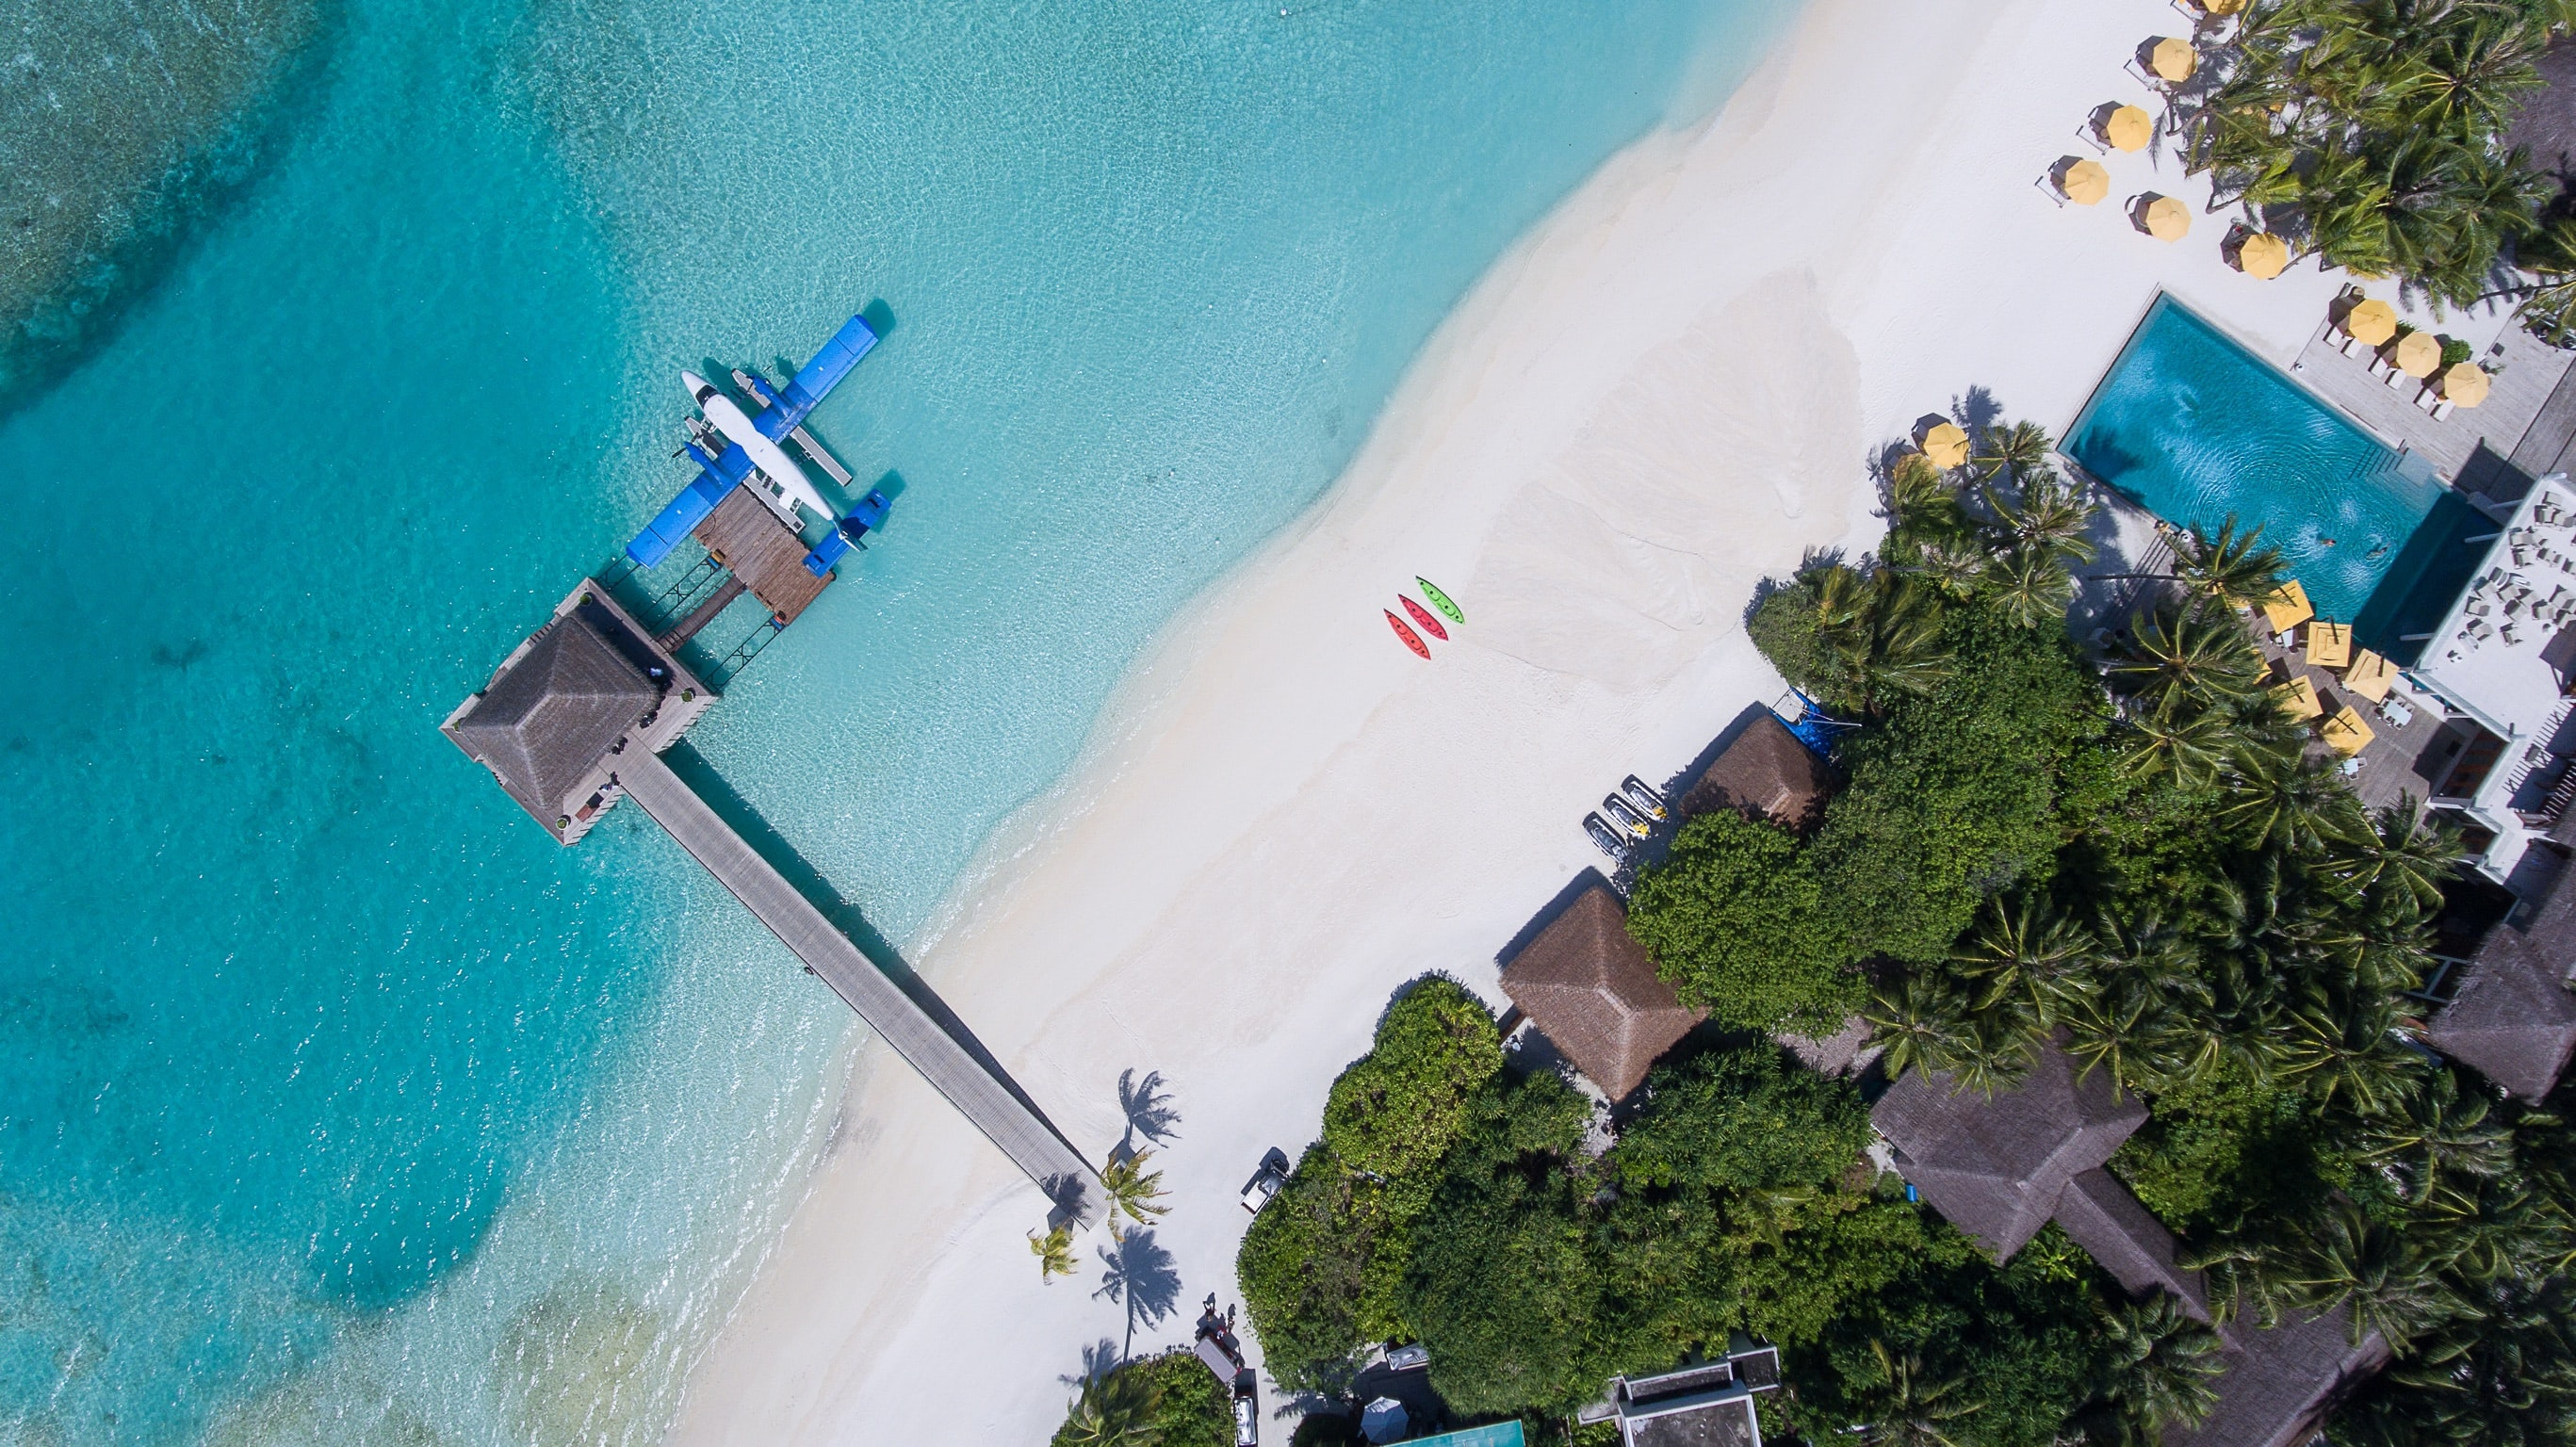 Drone aerial view of an airplane docked at the pier on the sand beach in Per Aquum Niyama